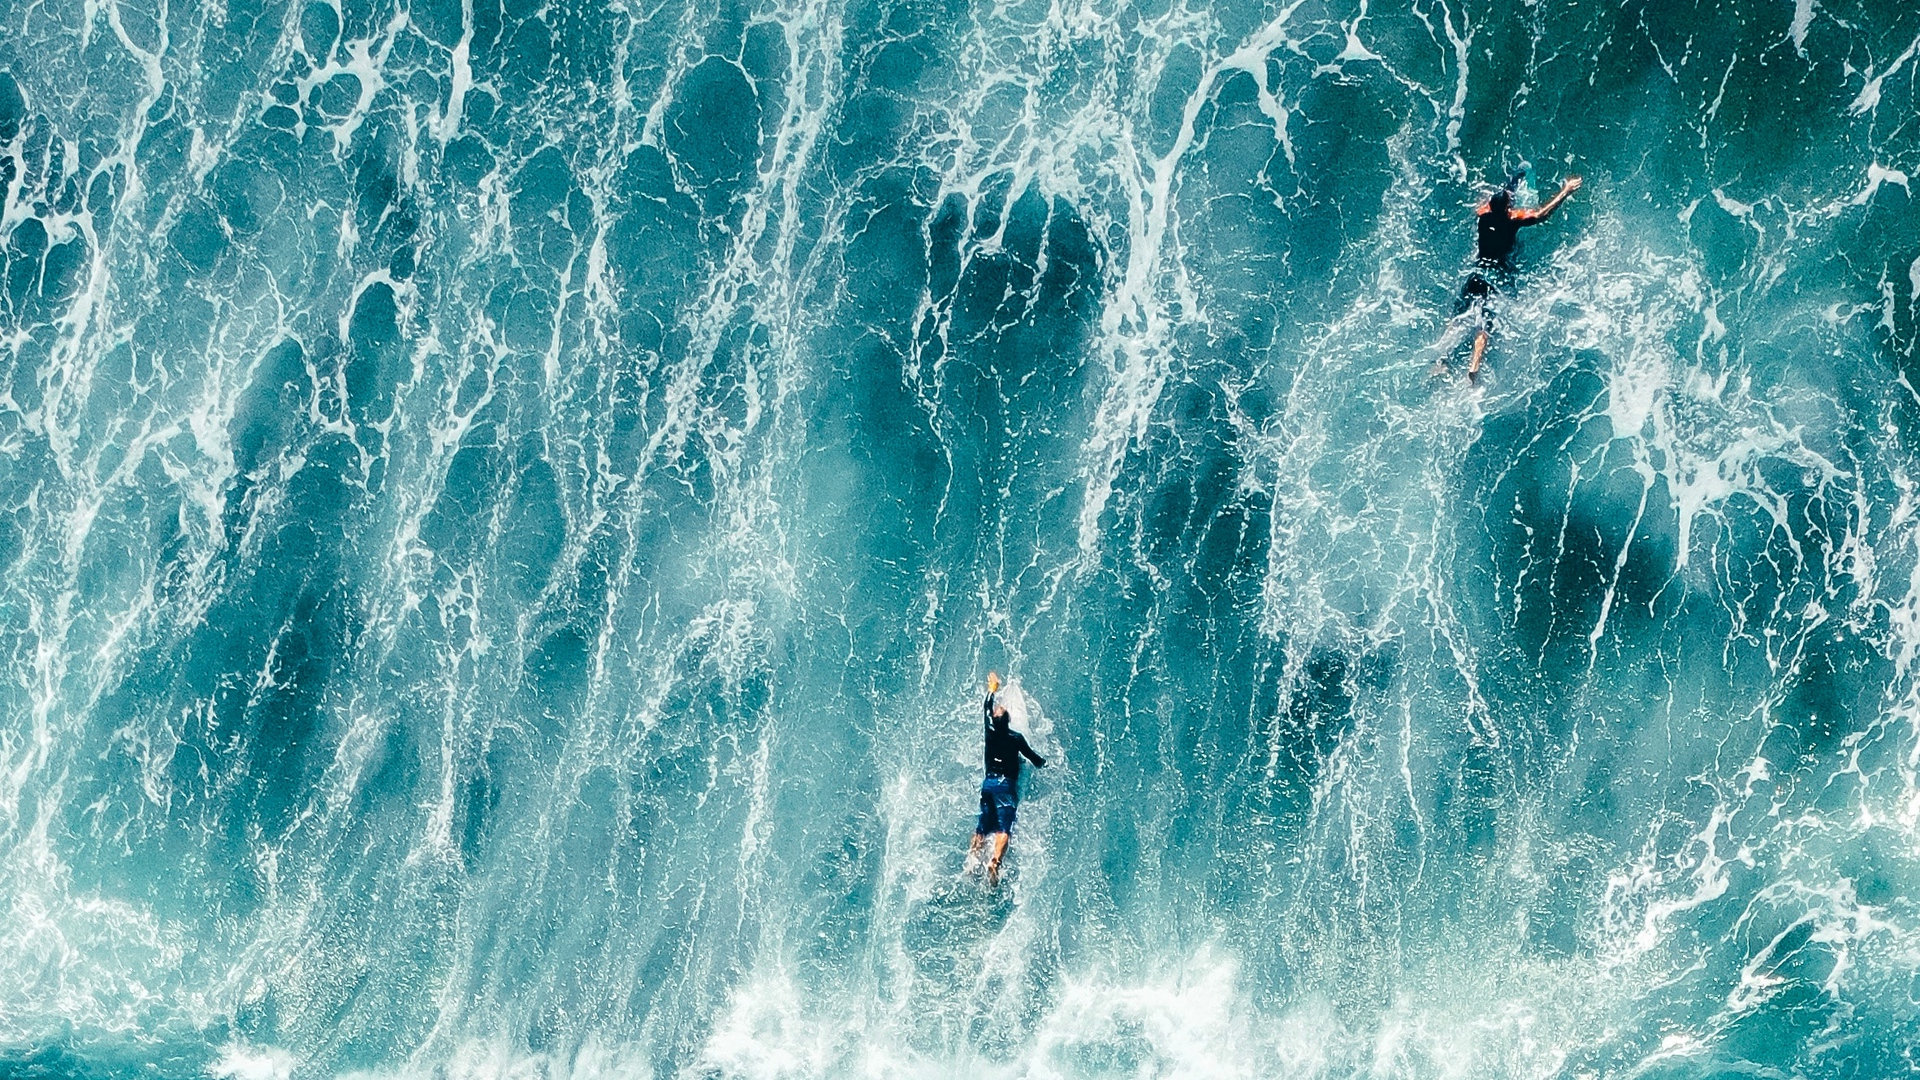 surfers waves aerial view x